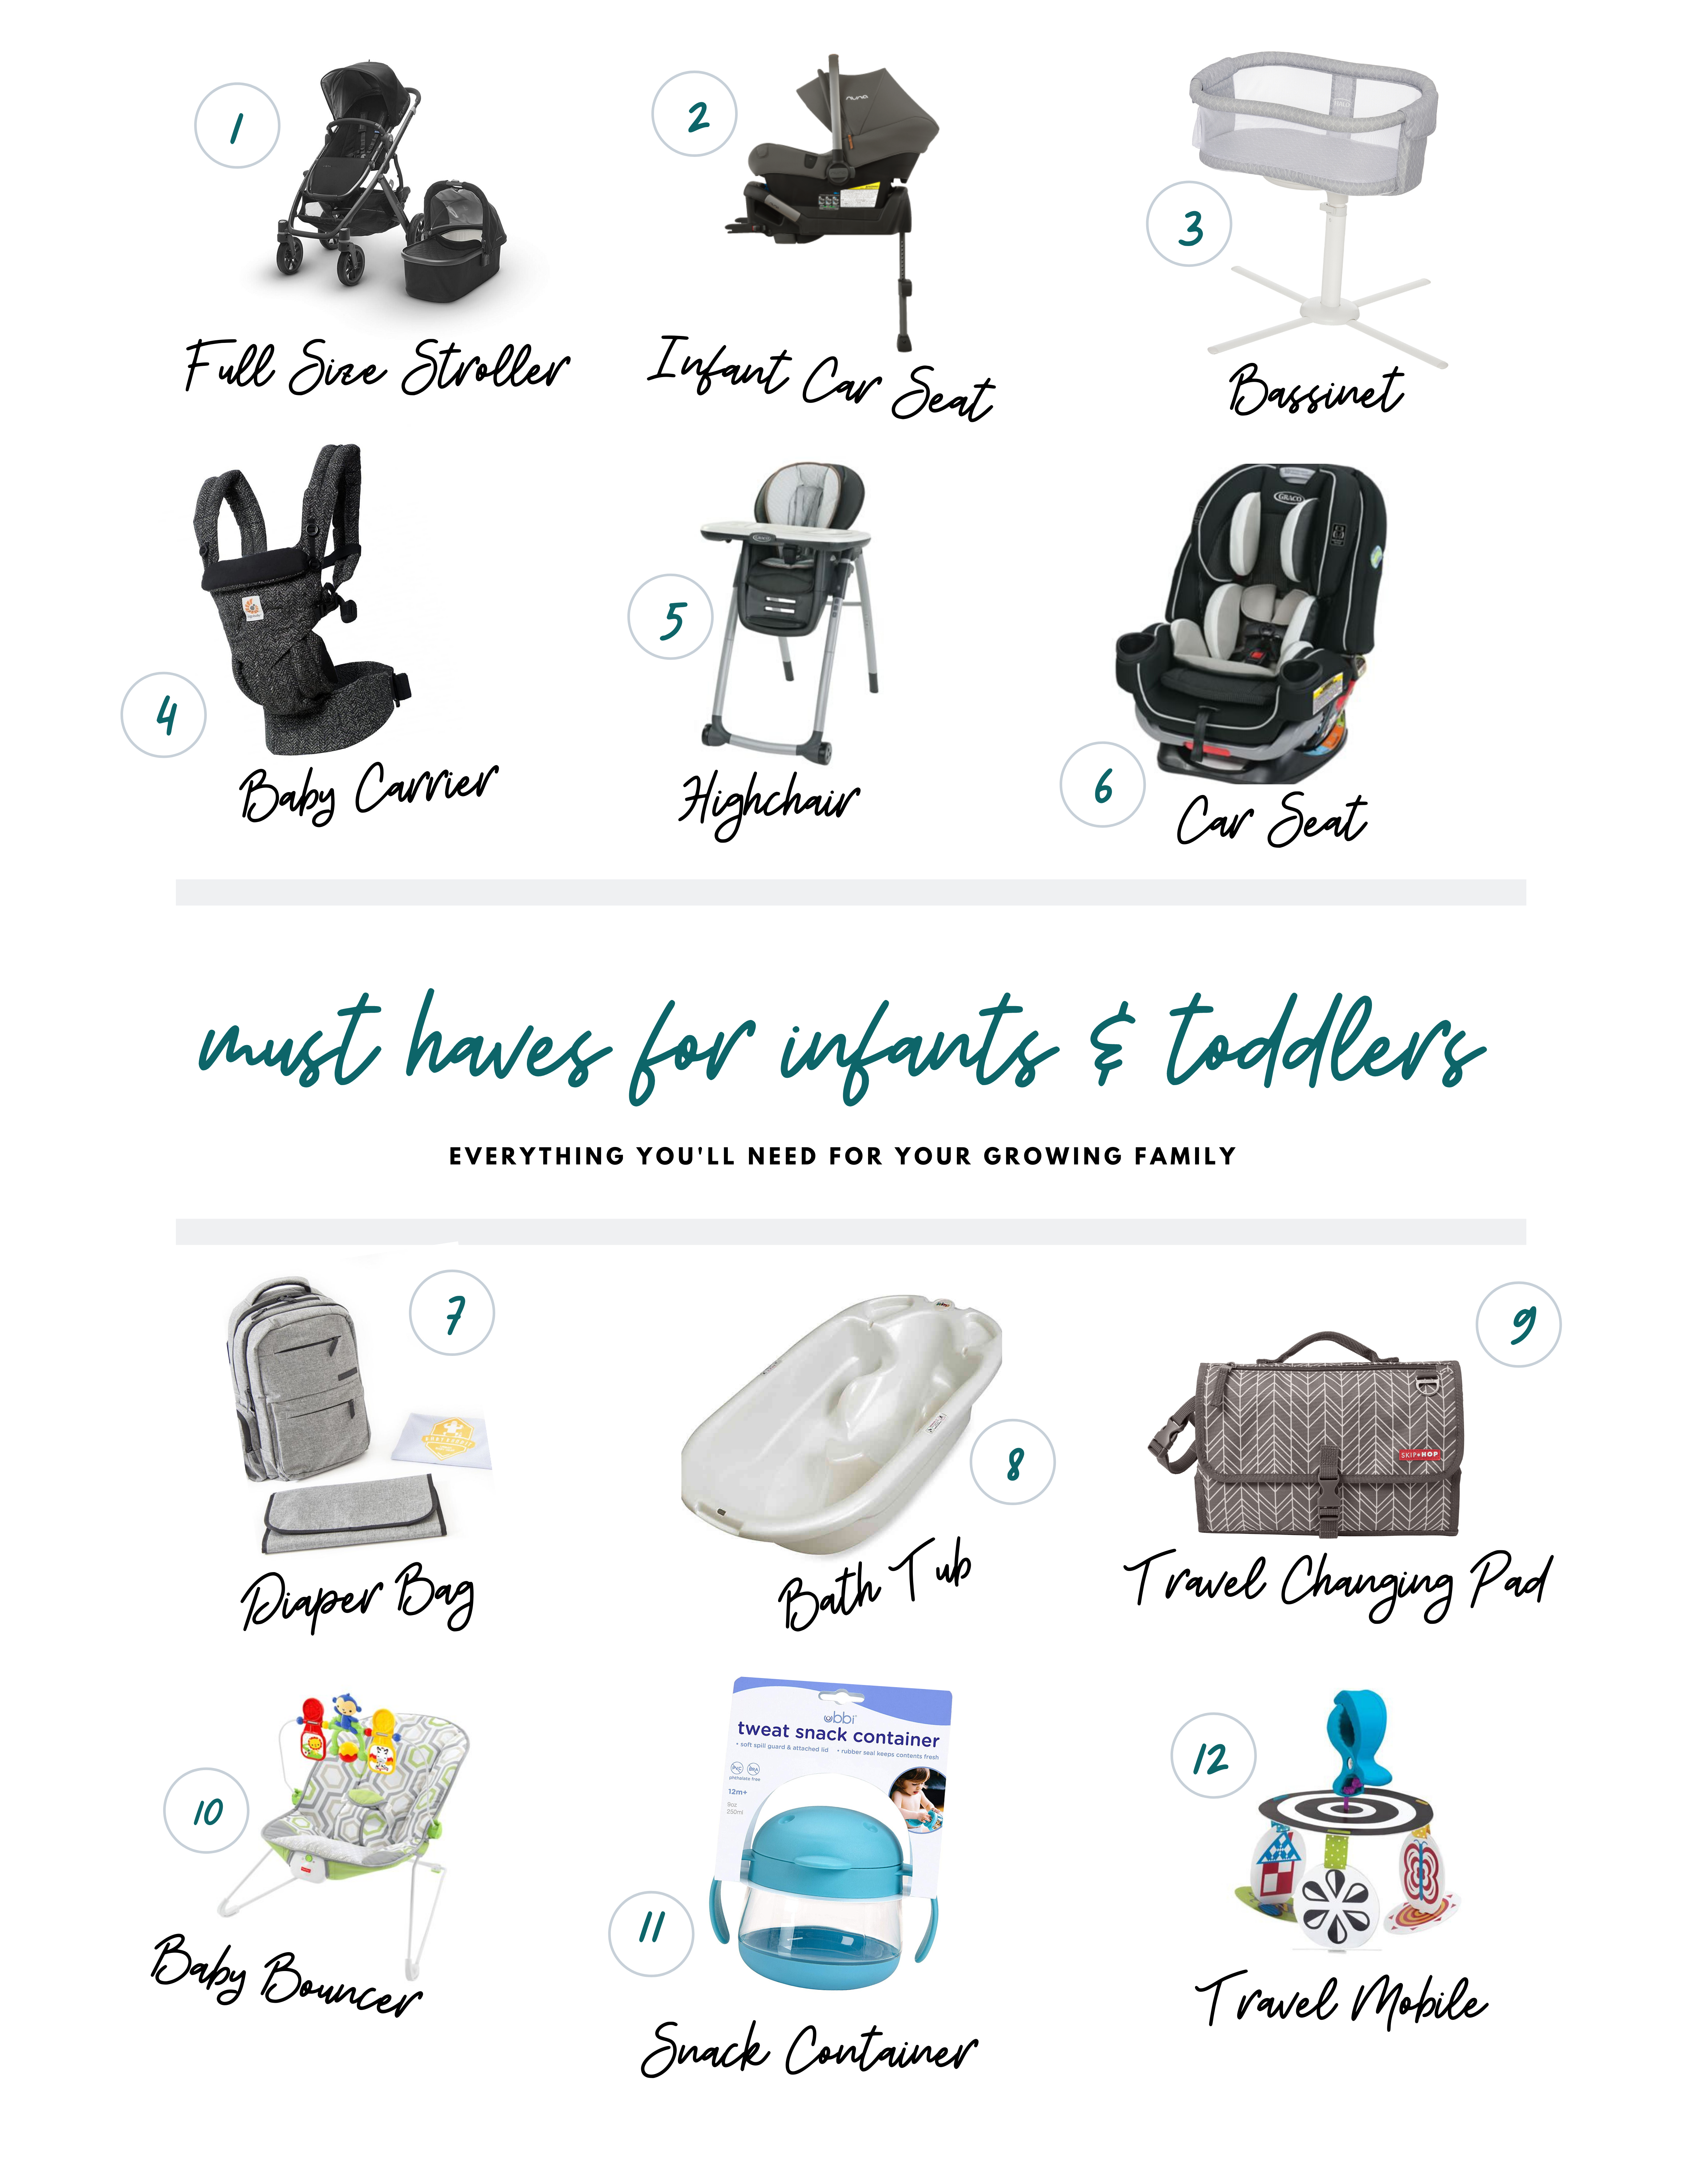 must haves for infants & toddlers